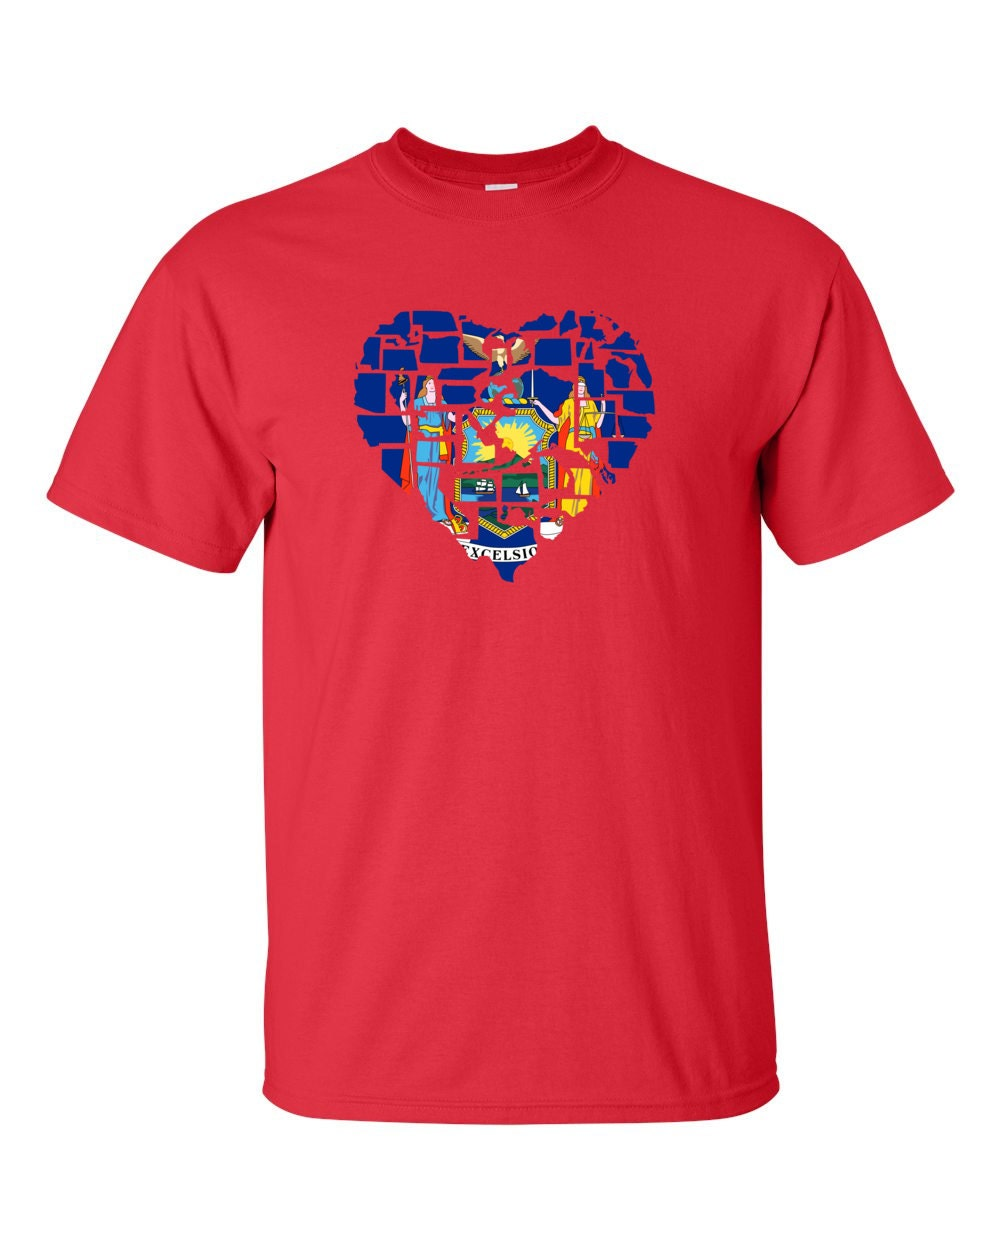 New York T-shirt - No Matter Where I Am, New York Is Alway In My Heart - My State New York T-shirt